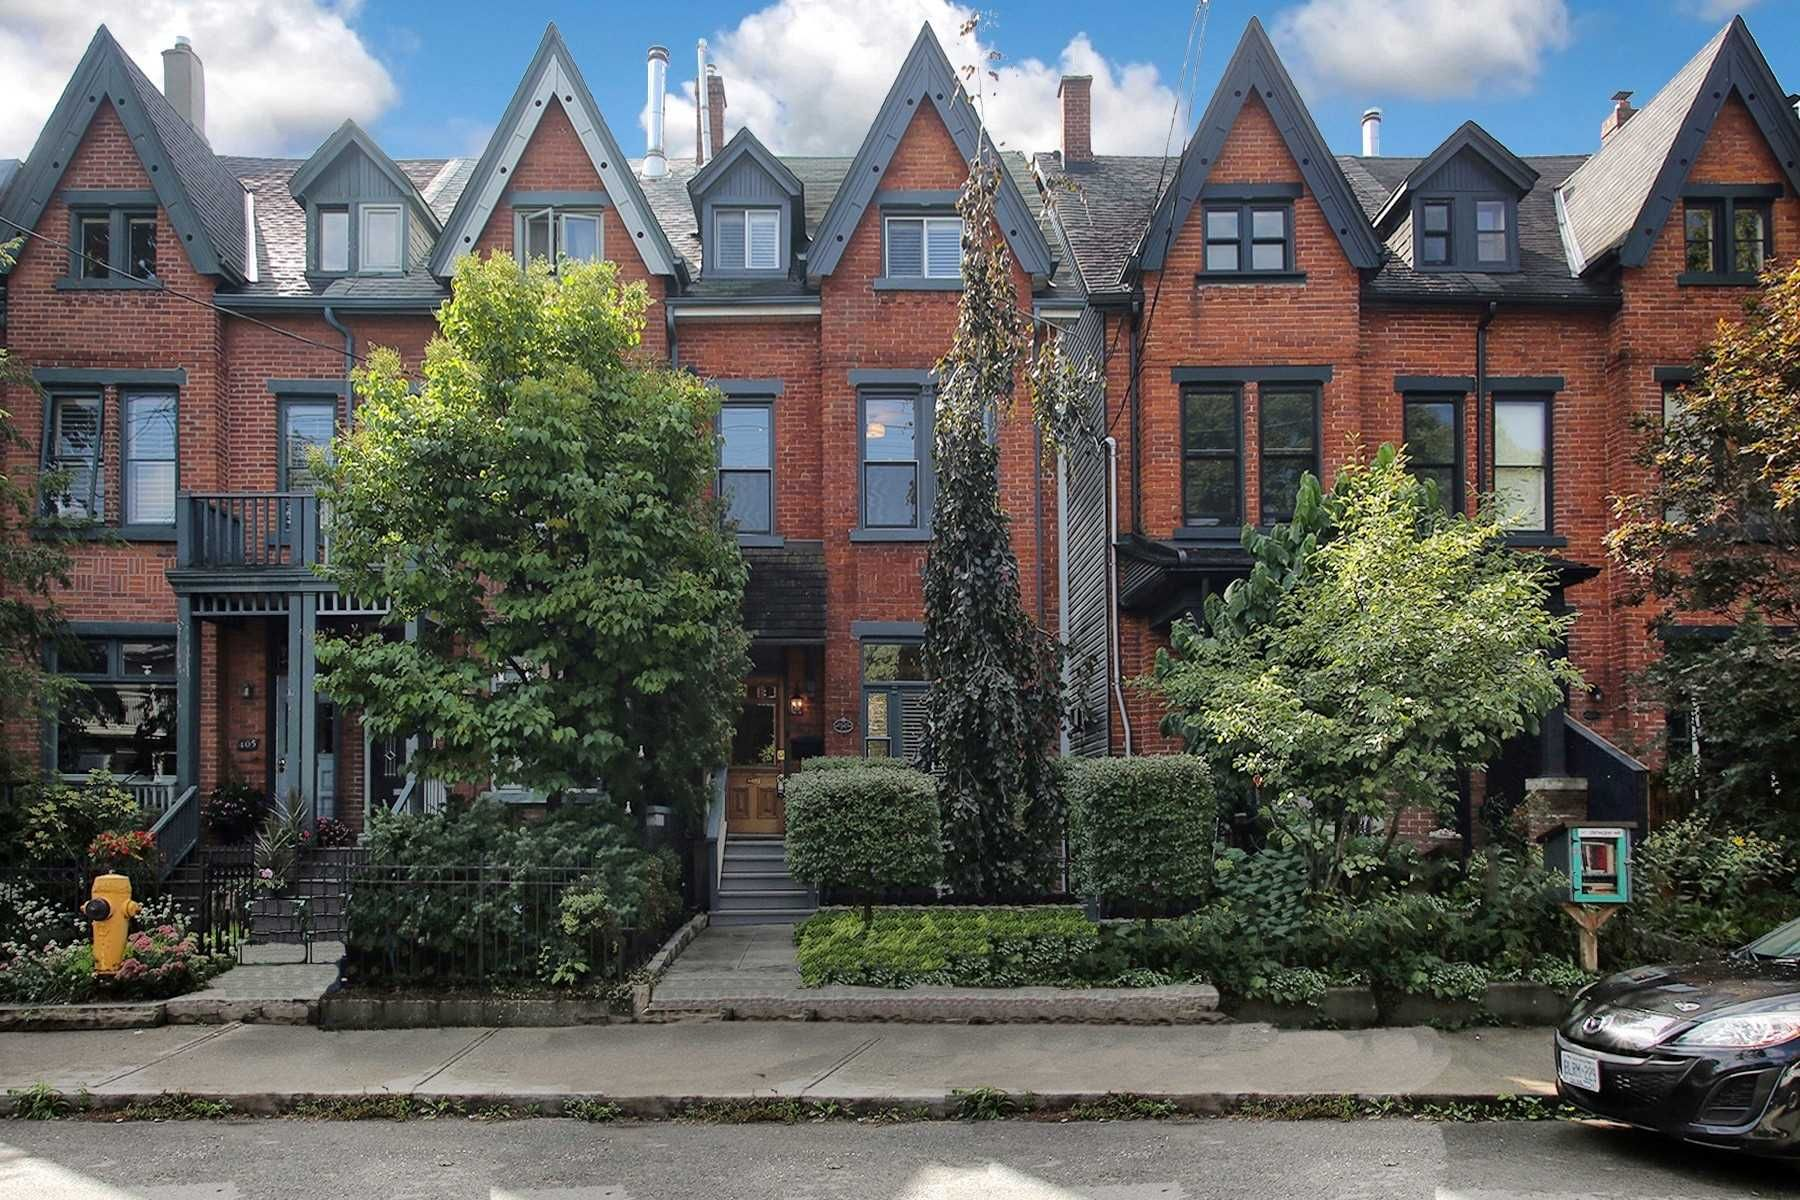 Main Photo: 401 E Wellesley Street in Toronto: Cabbagetown-South St. James Town House (3-Storey) for sale (Toronto C08)  : MLS®# C5385761